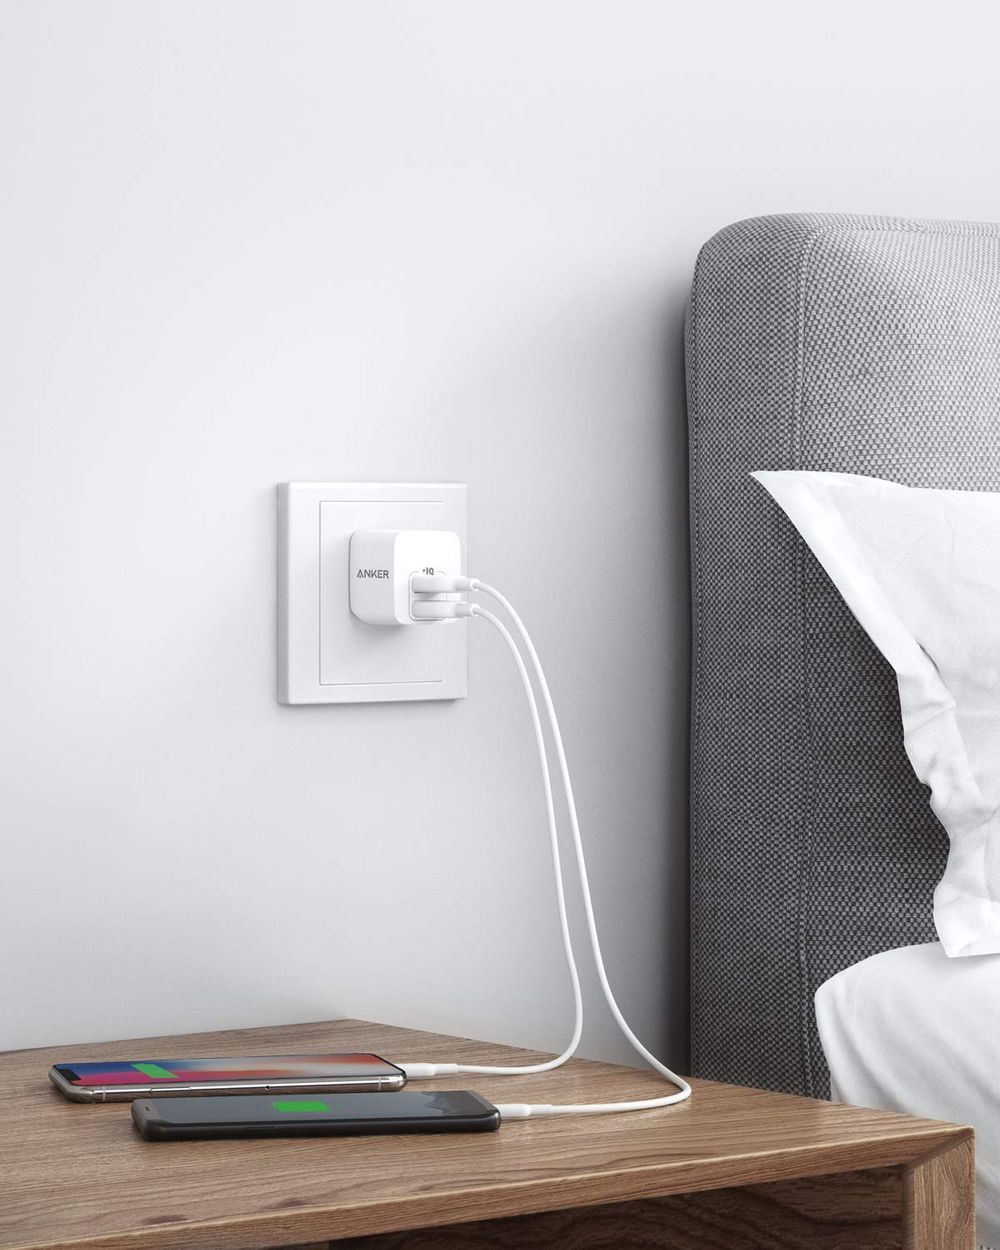 Anker PowerPort Mini super compact dual USB wall charger on Sale for 11.99 (Save 5.00) at Amazon Canada